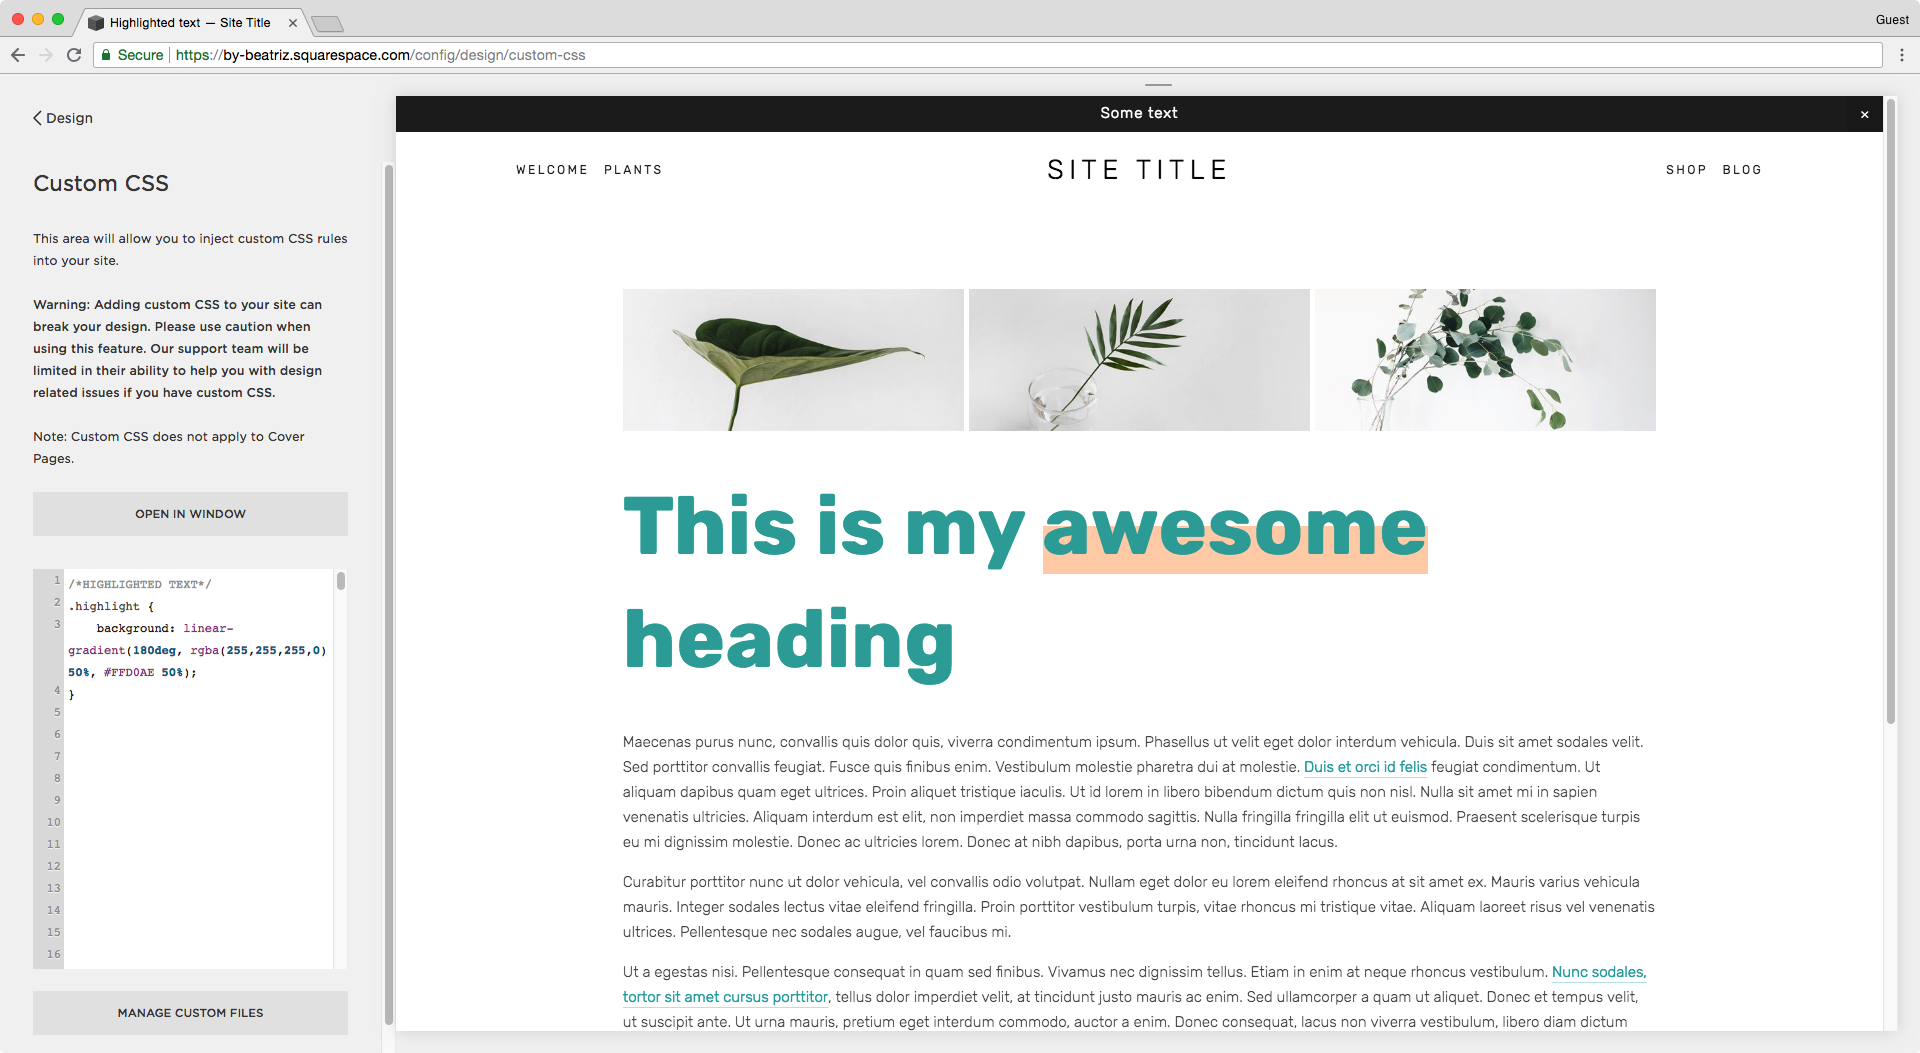 Adding a low highlight to a word inside an h1 in Squarespace